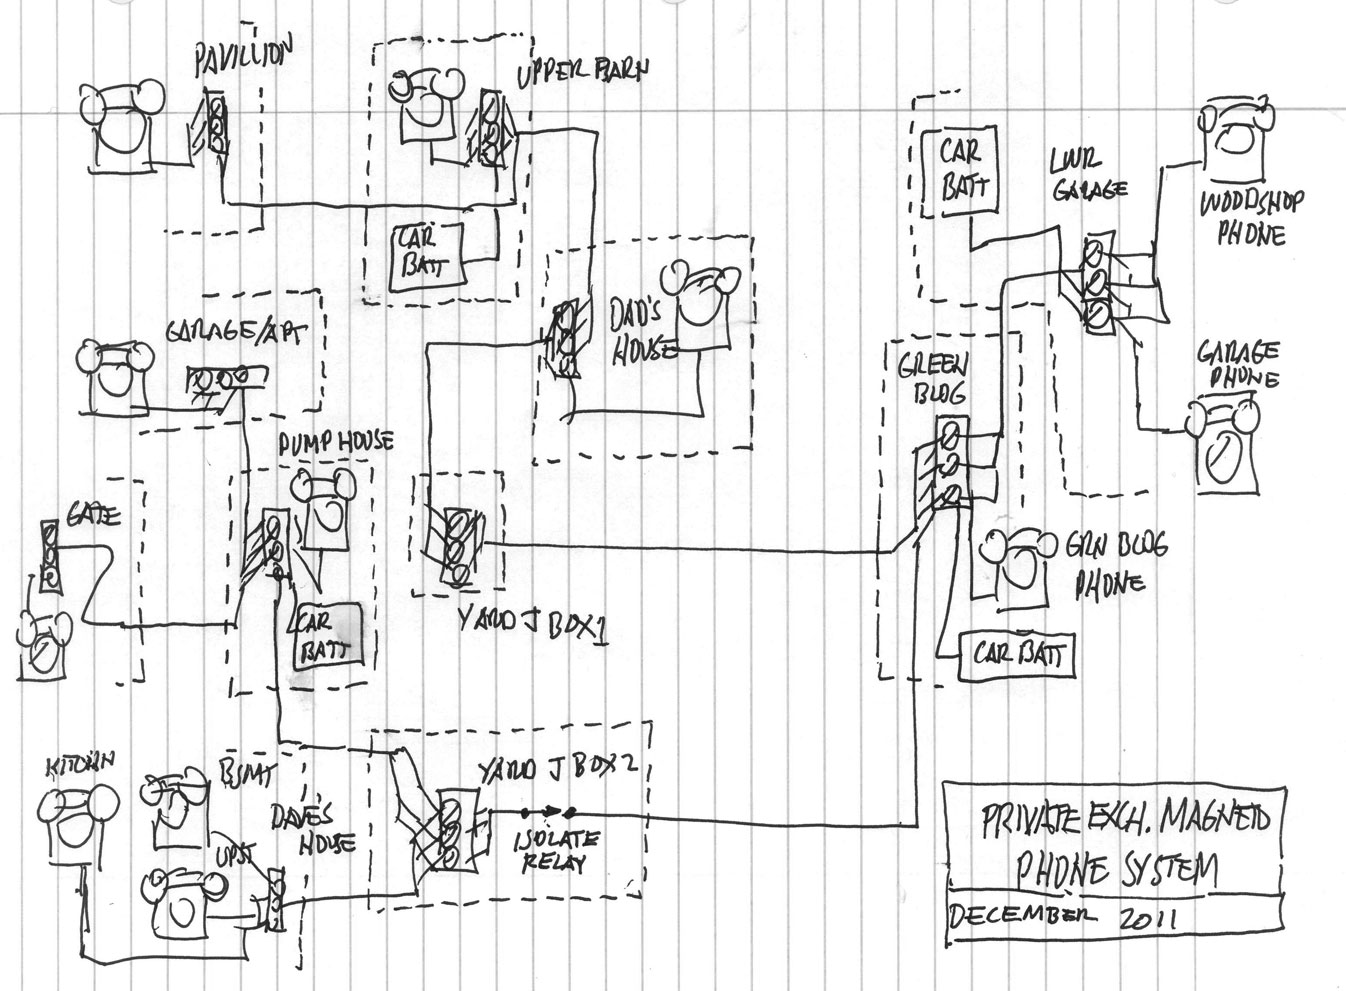 phonesysdiag similiar simple telephone schematic keywords readingrat net telephone wiring schematic at fashall.co